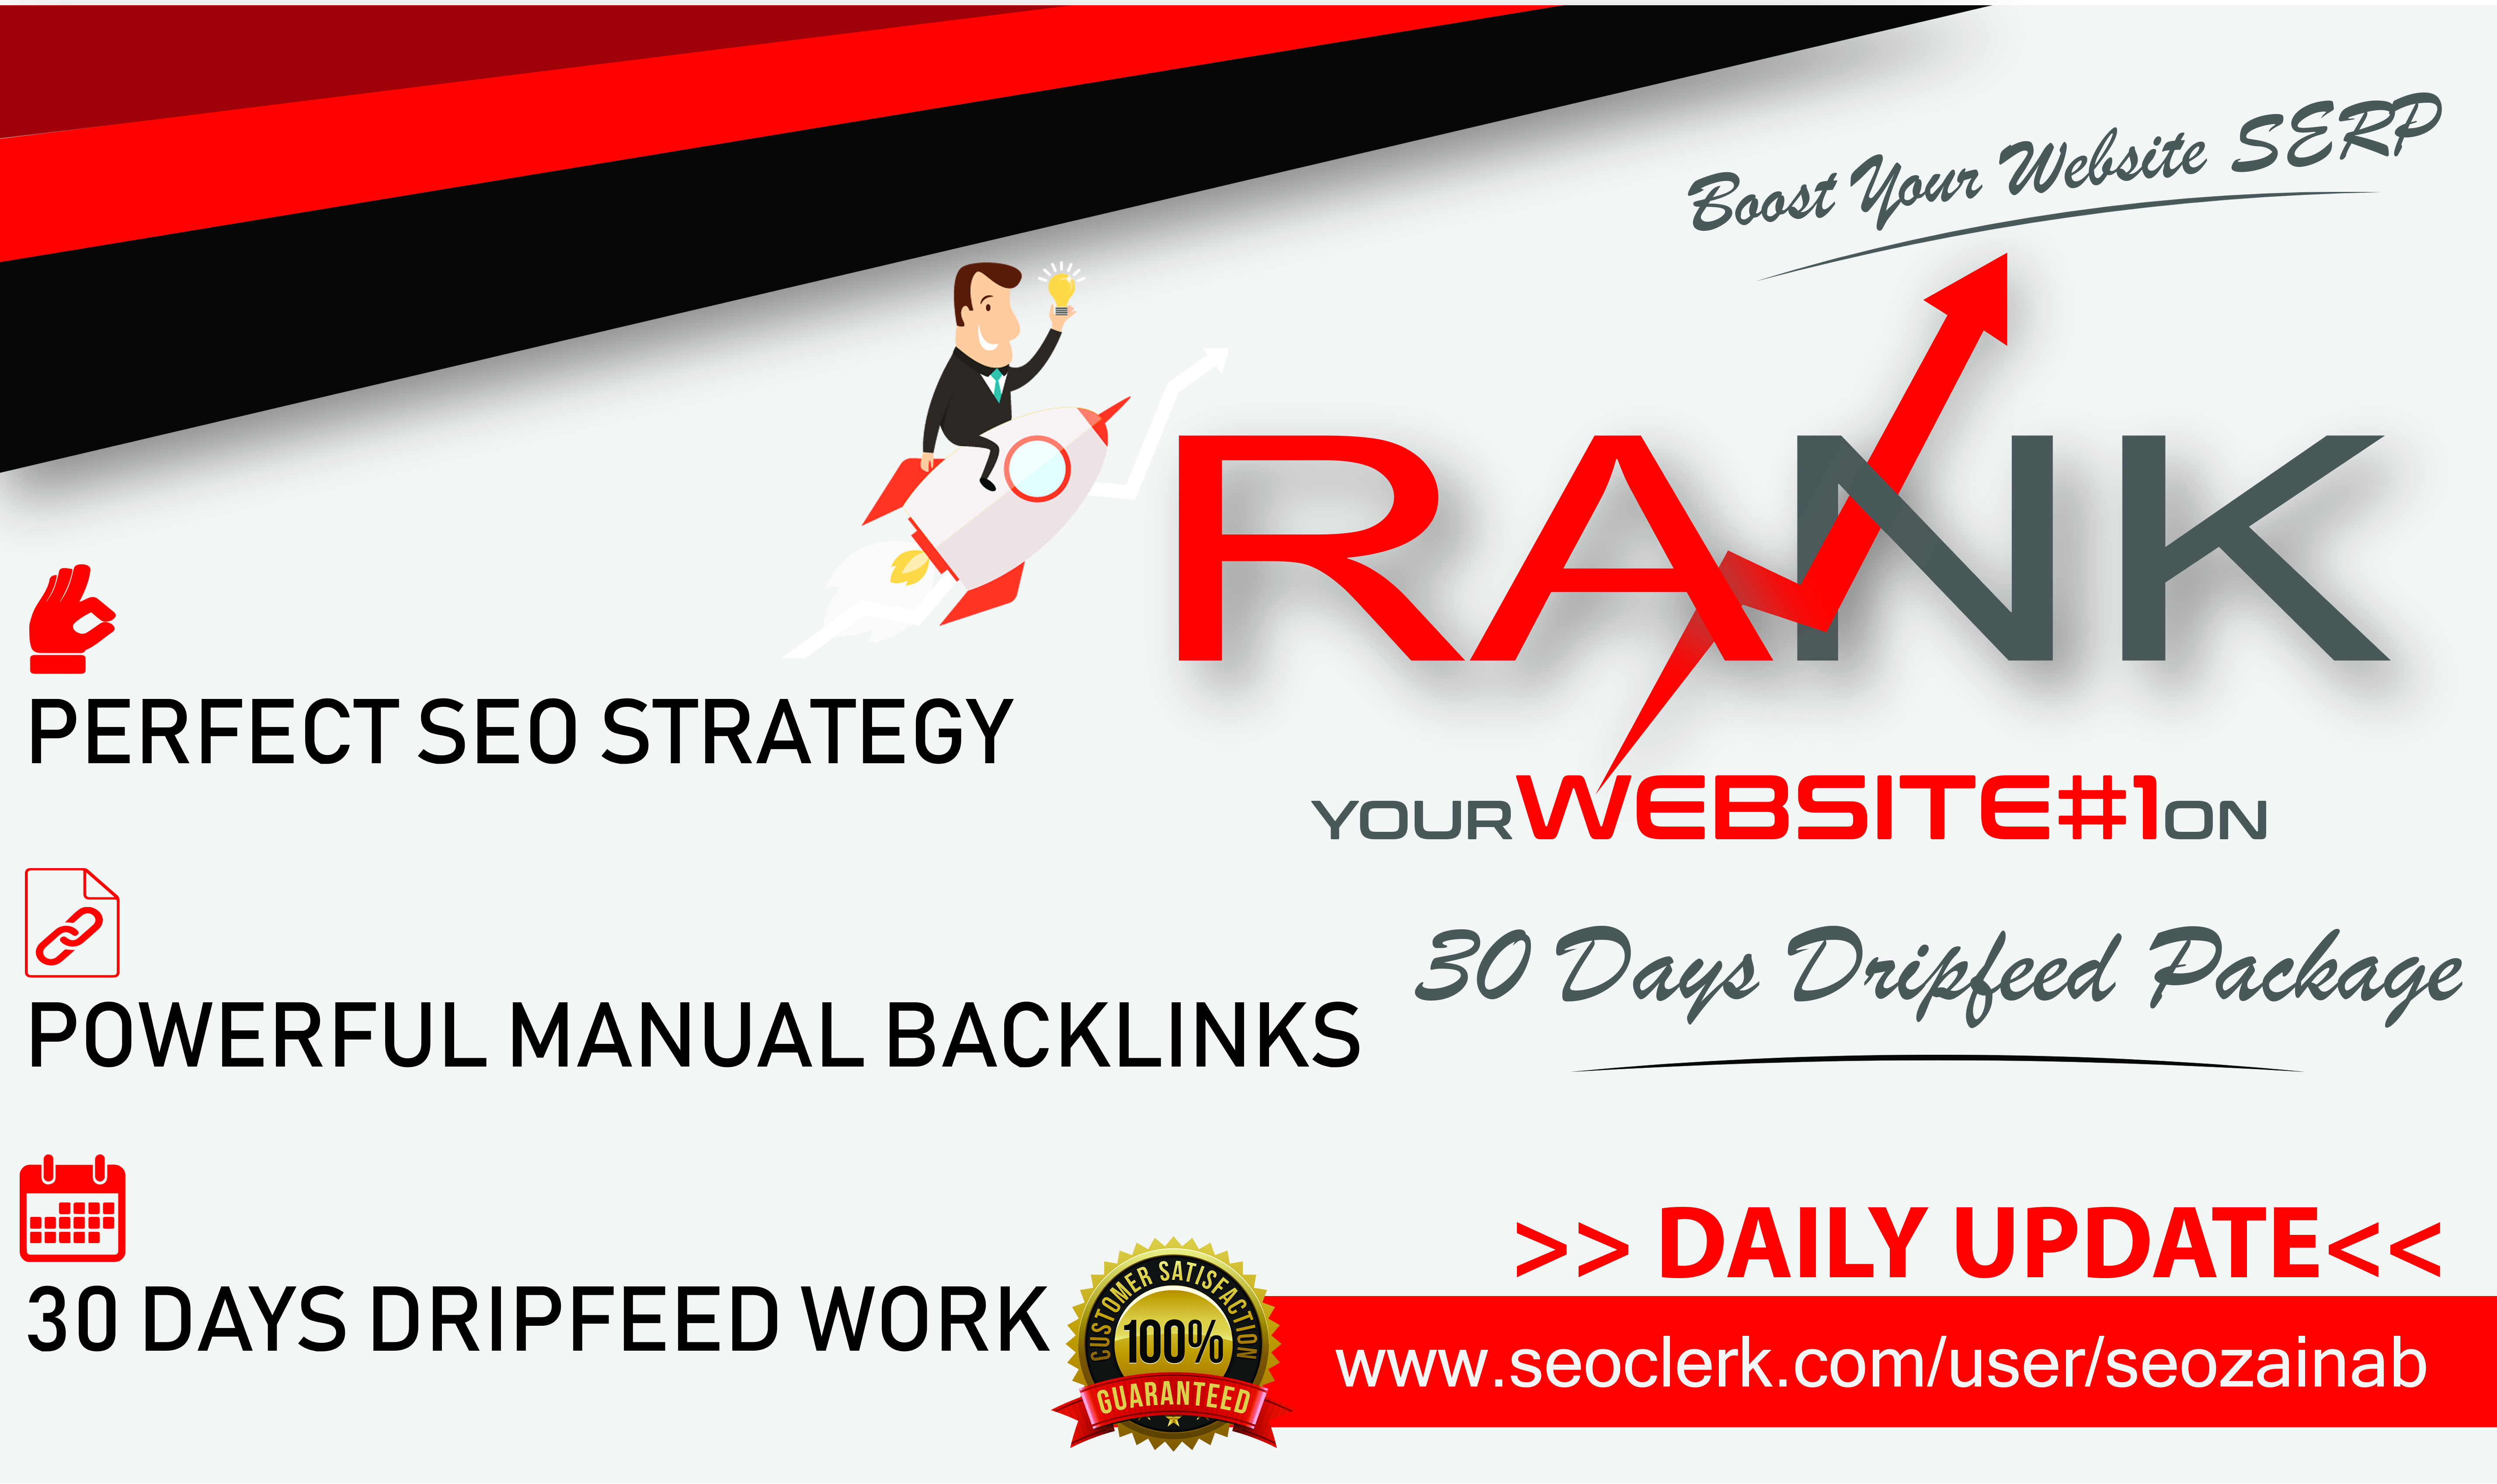 High Quality Rank Your Website on Google 30 Days Dripfeed Package SEO Backlinks Manually